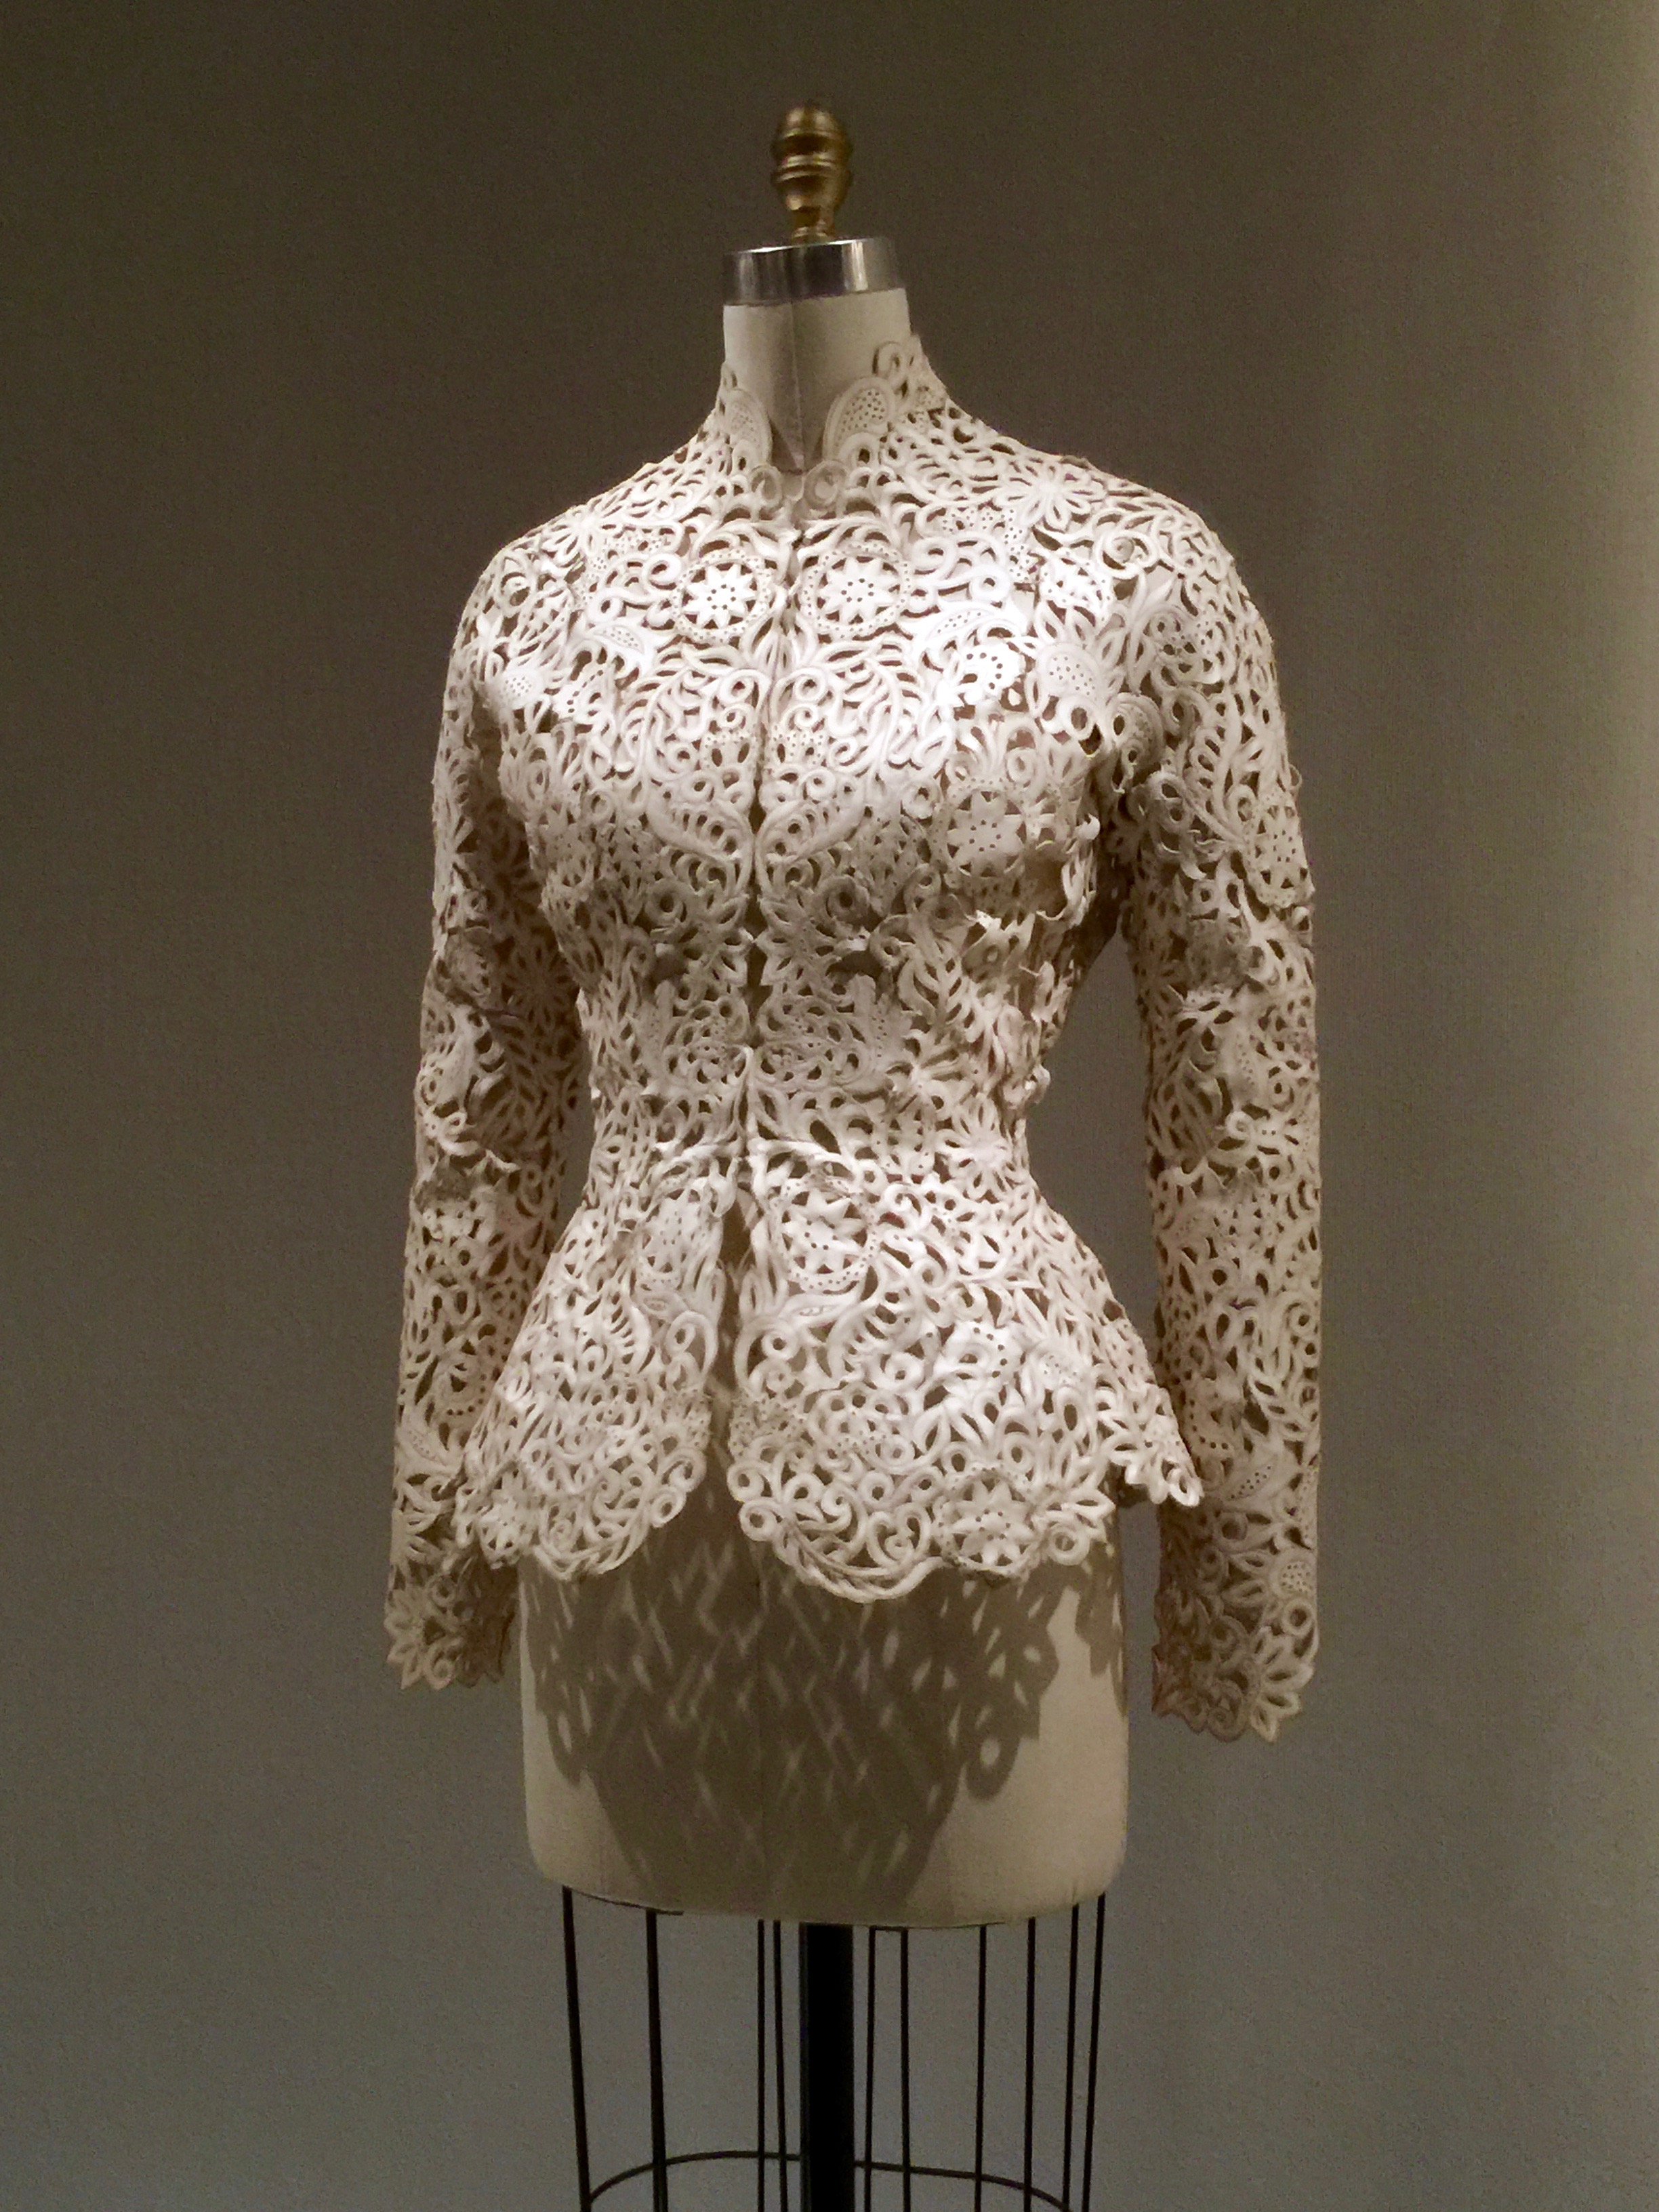 HOUSE OF DIOR, John Galliano JACKET, Autumn/Winter 1997-98, haute couture  Hand-cut and hand-pieced white leather, machine top-stitched, with hand-sewn wire frame